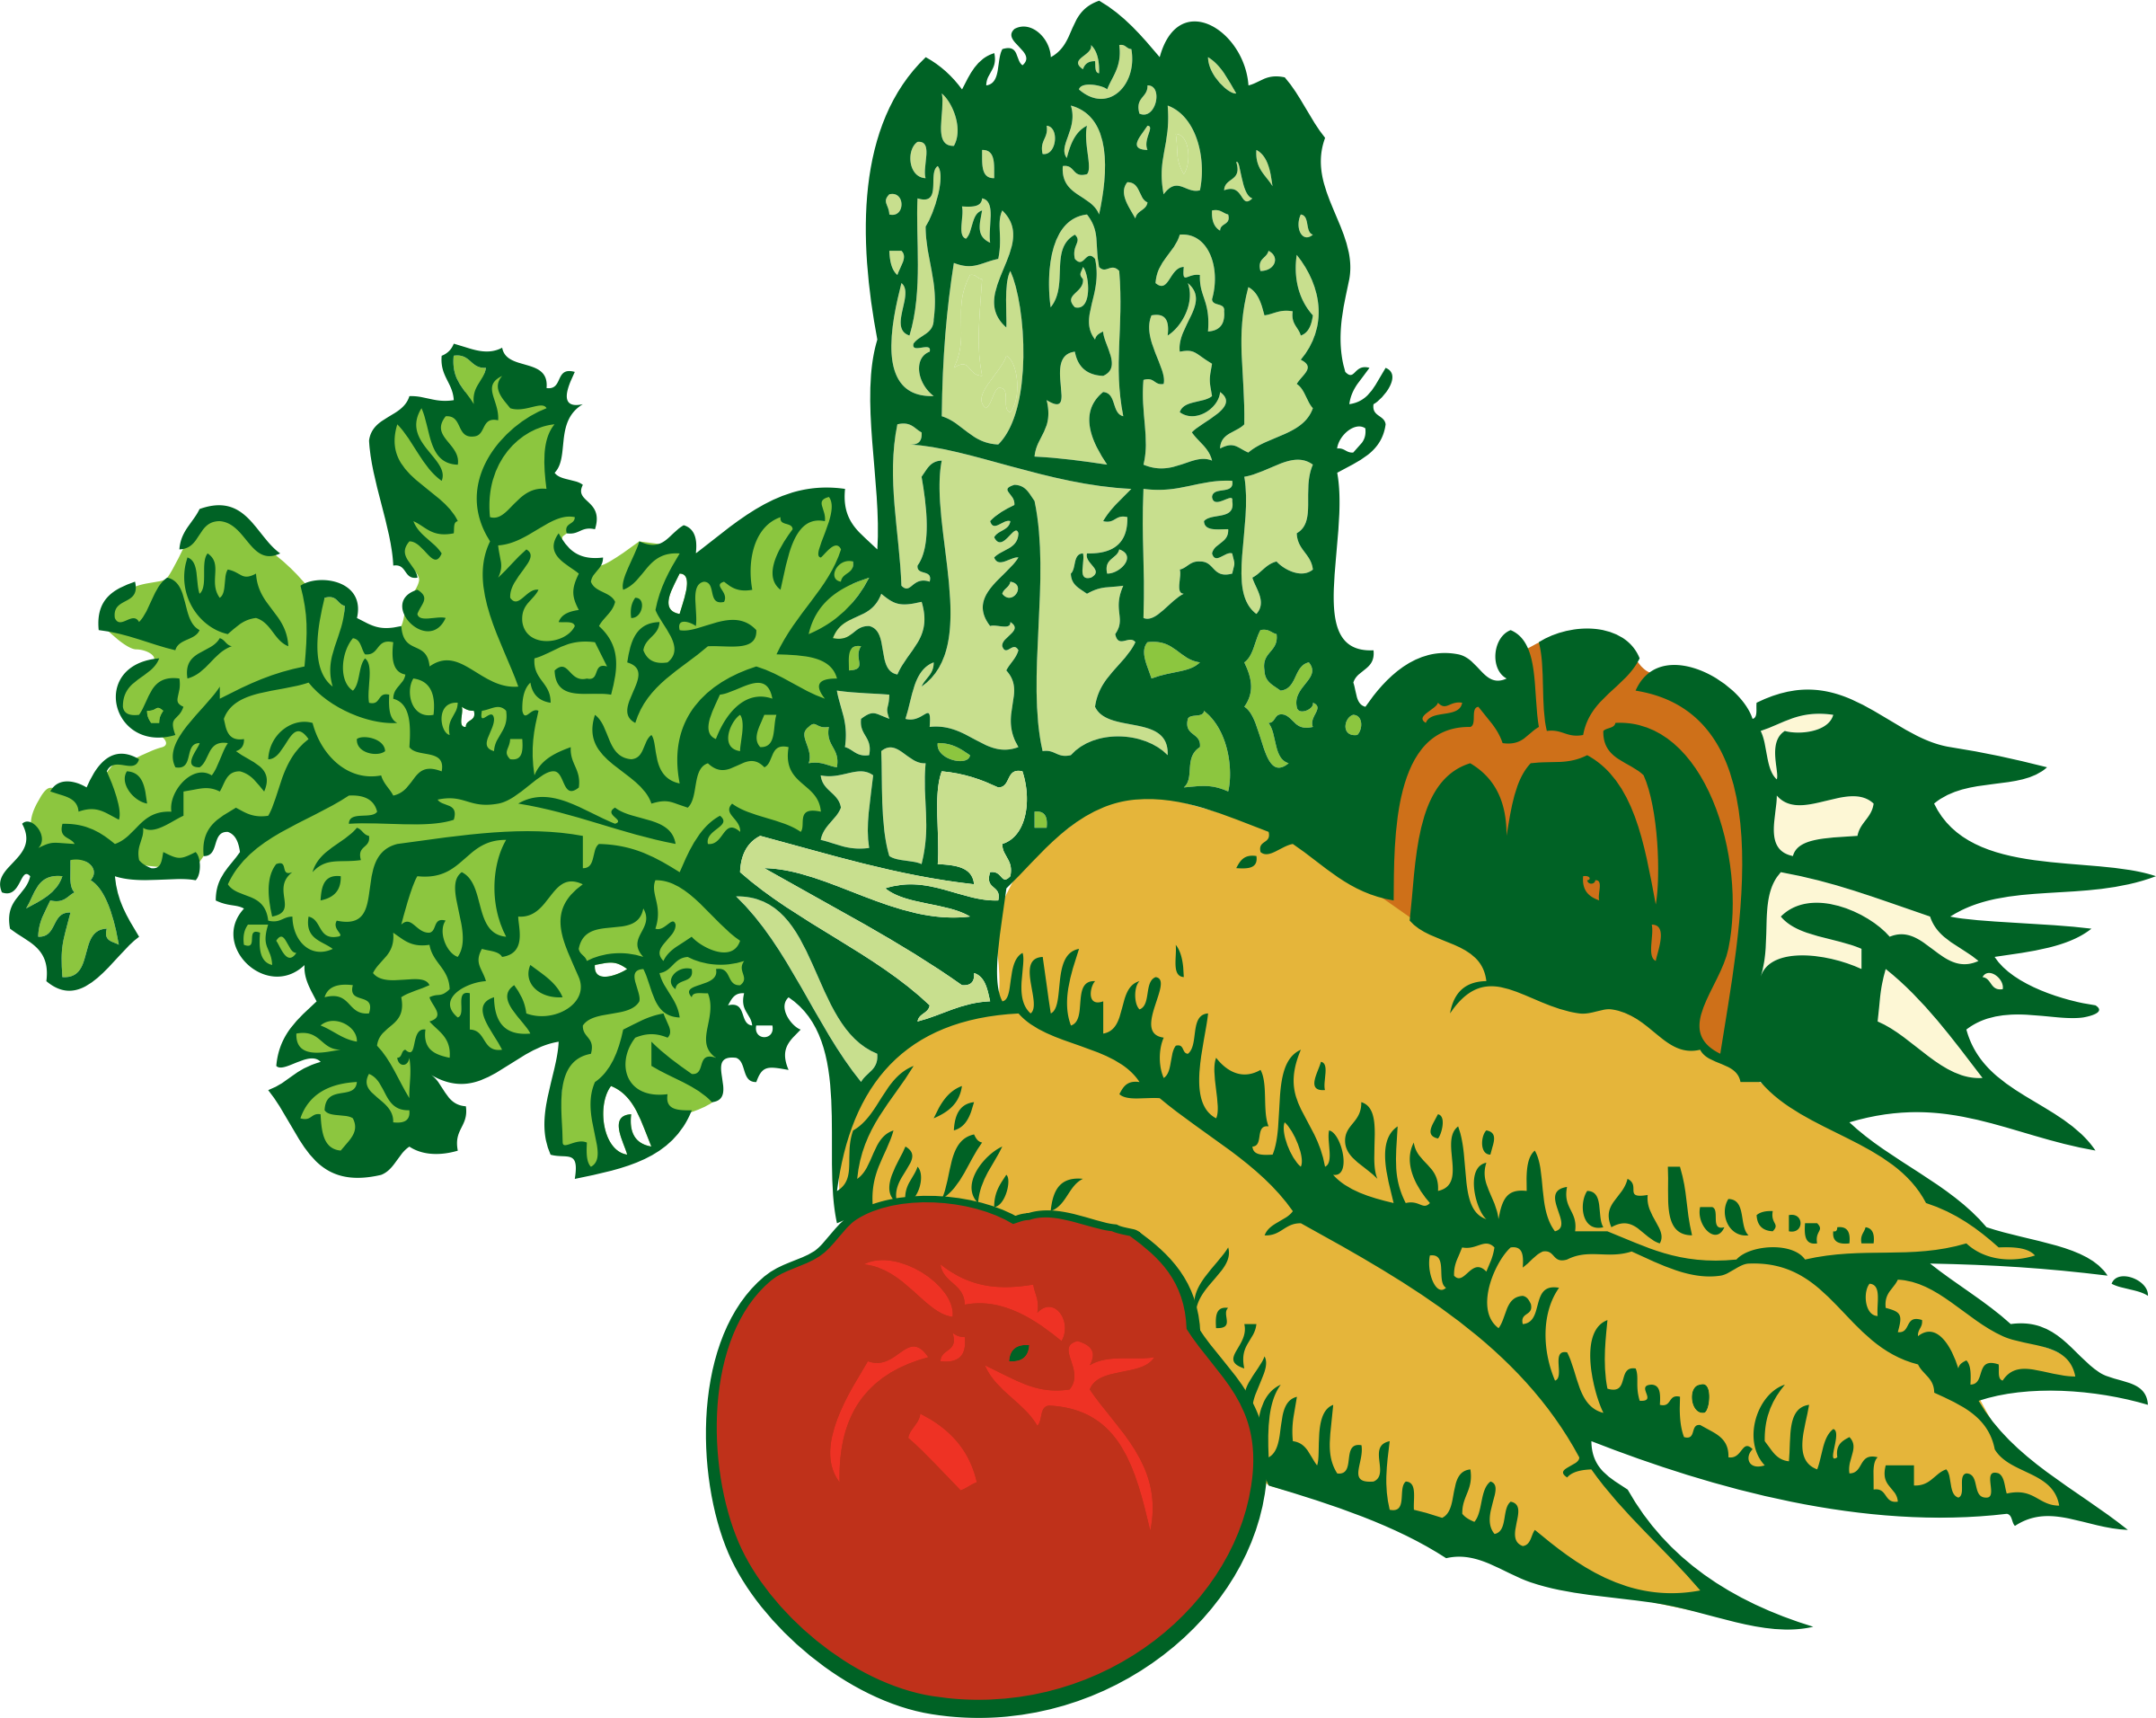 Vegetables clipart icon, Vegetables icon Transparent FREE.